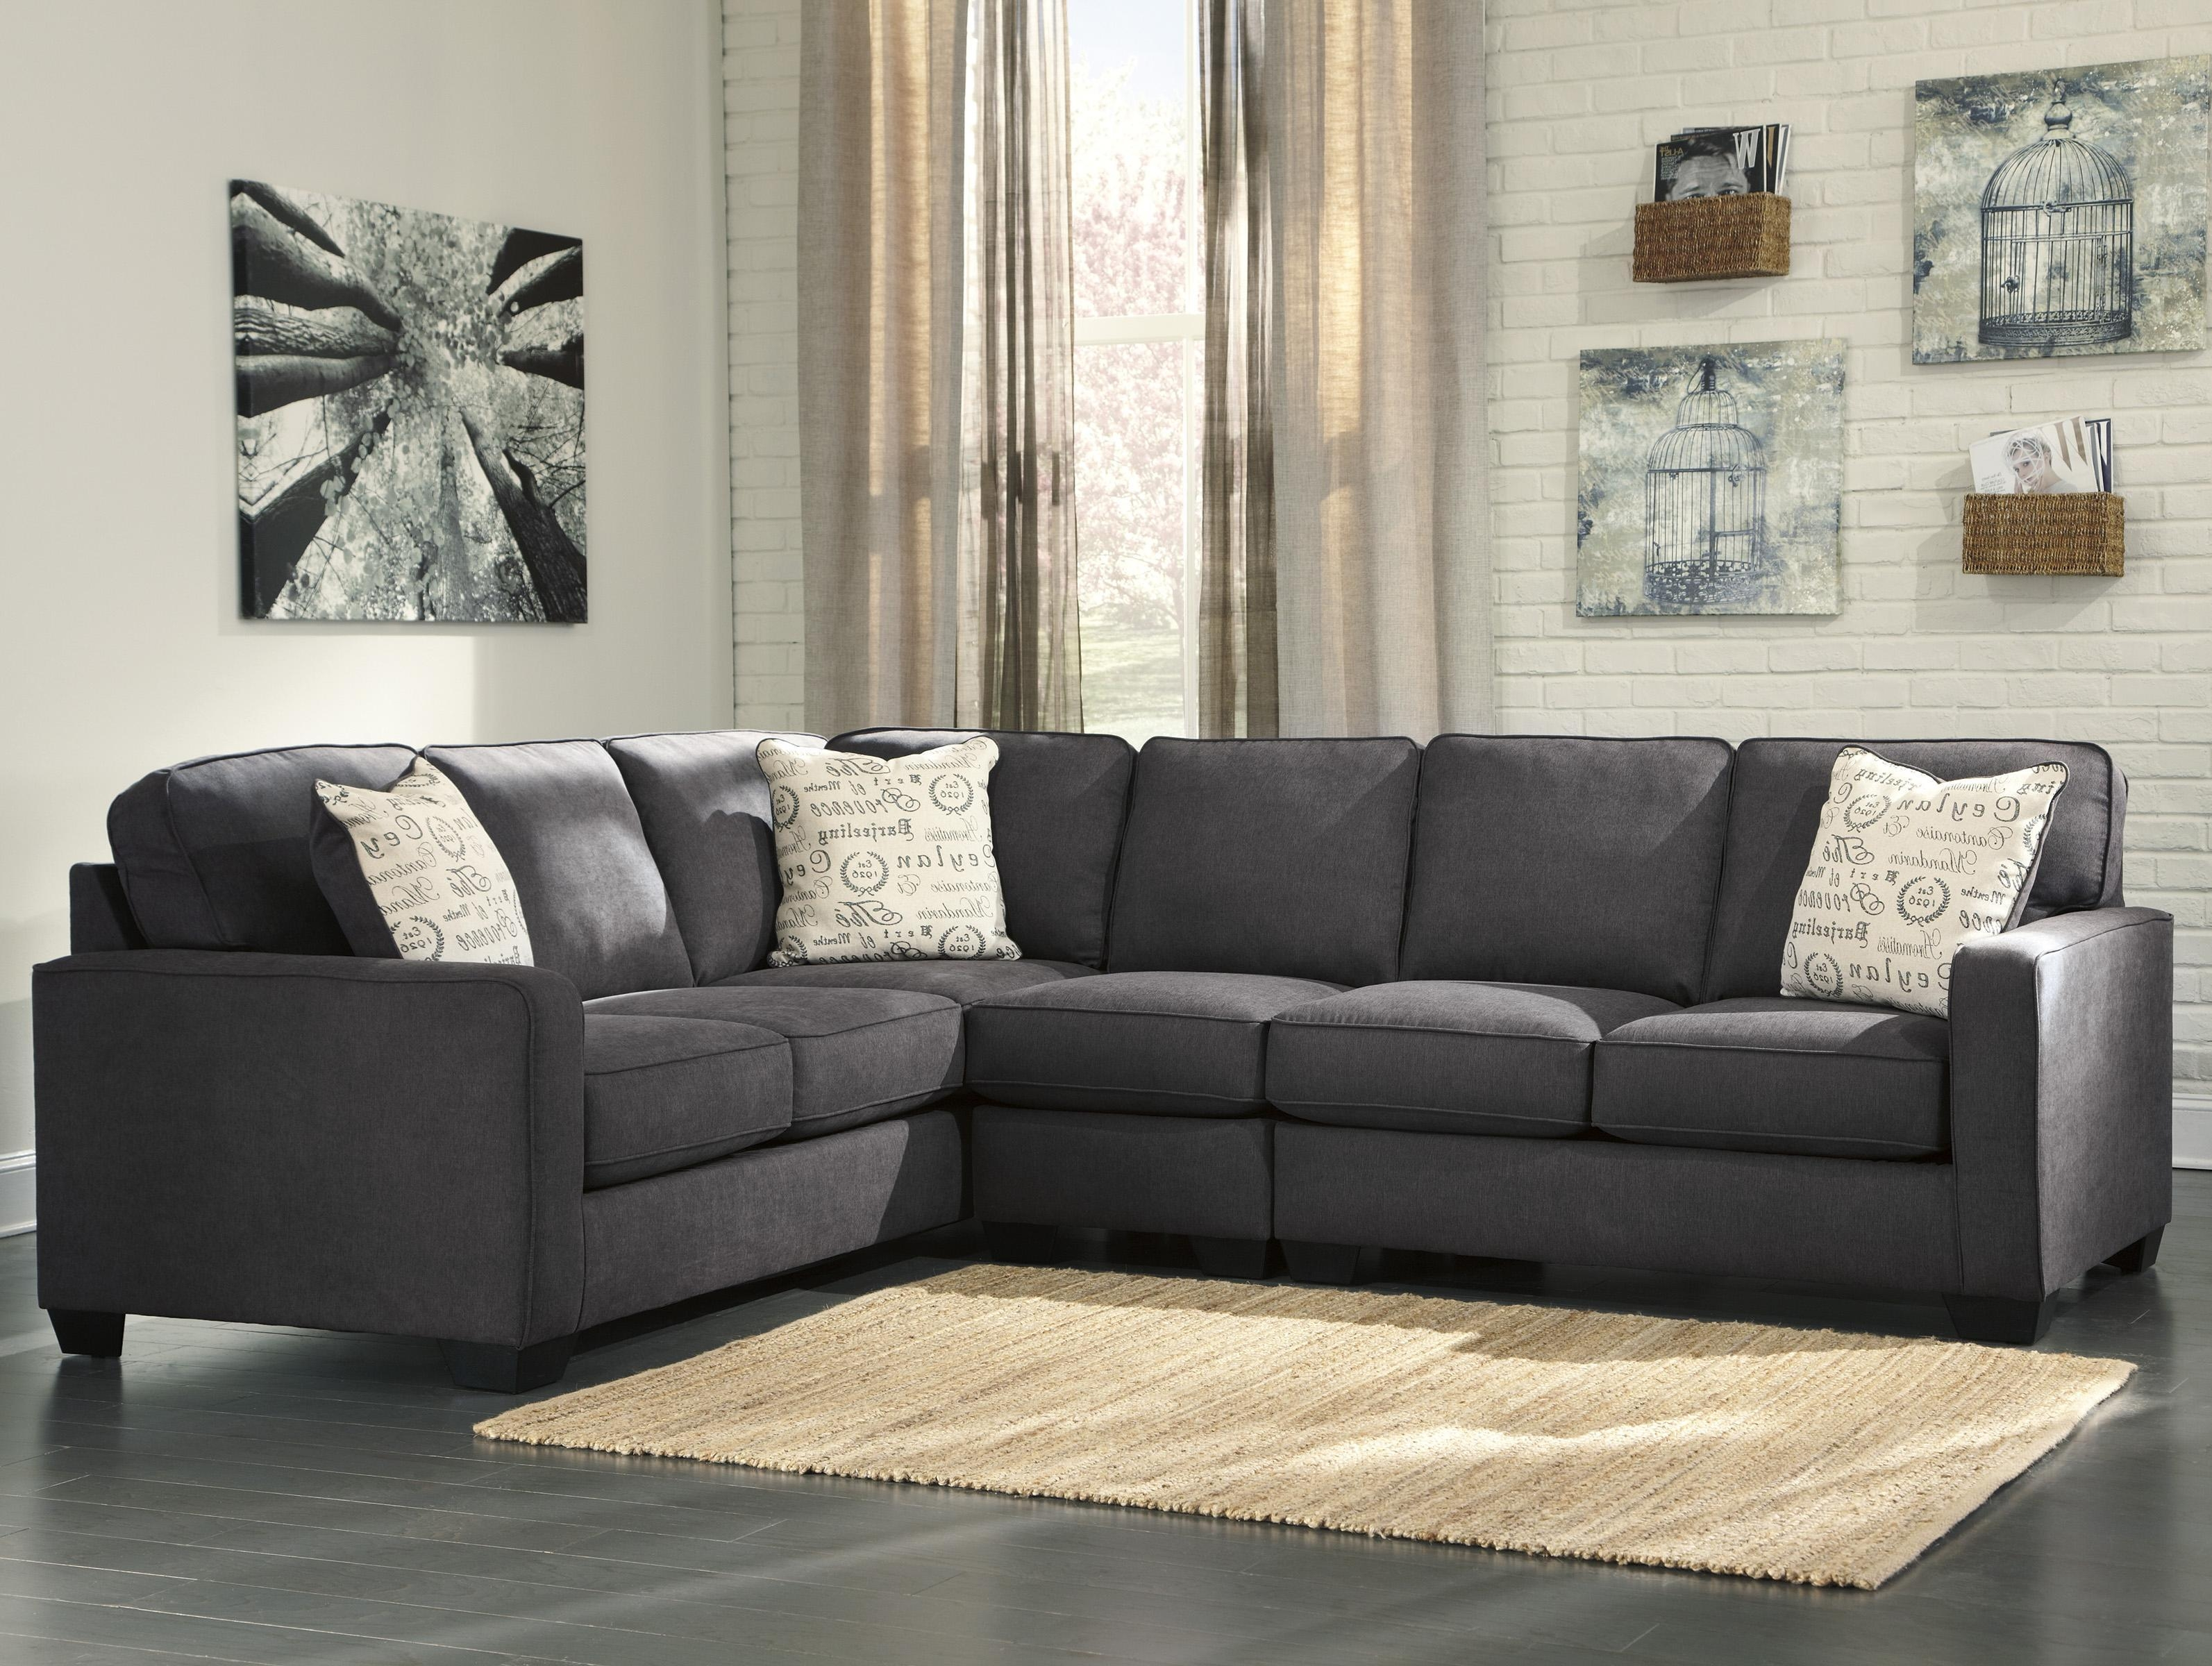 Ashley Signature Design Alenya – Charcoal 3 Piece Sectional With Inside Signature Design Sectional Sofas (Image 2 of 20)